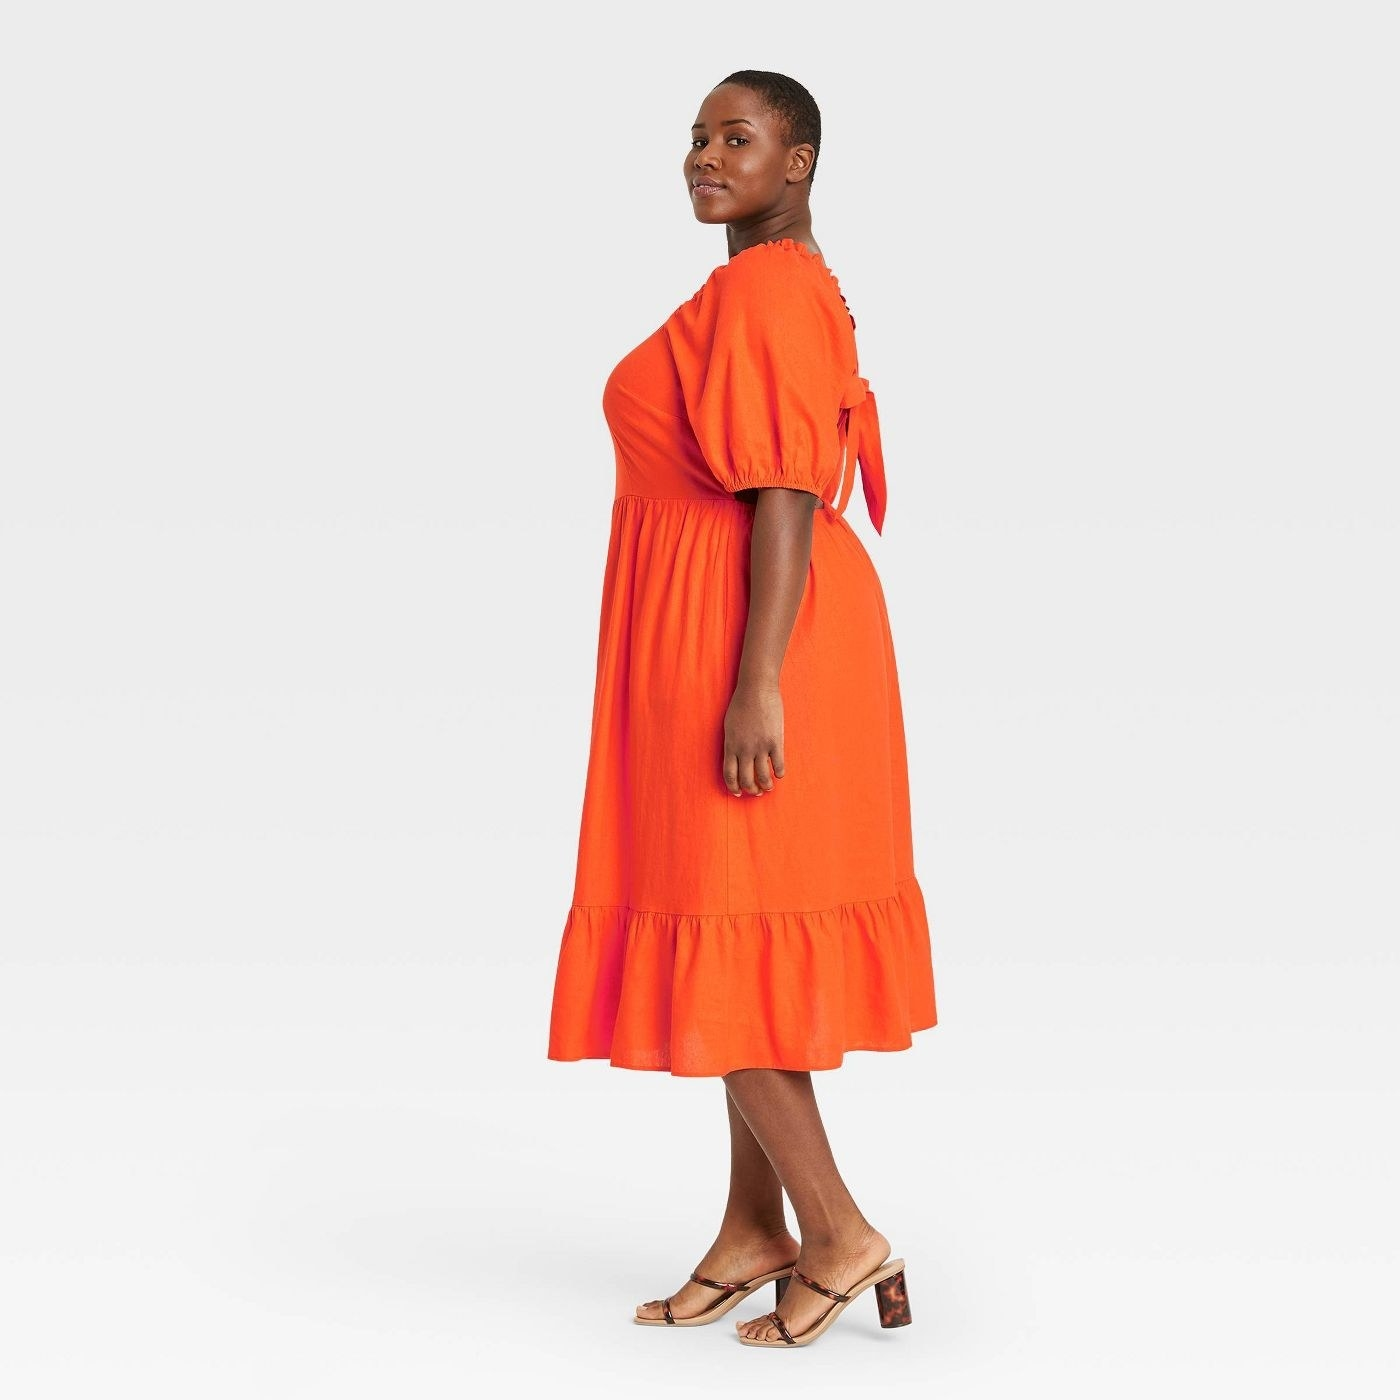 Model in orange dress with puff sleeves and an open back